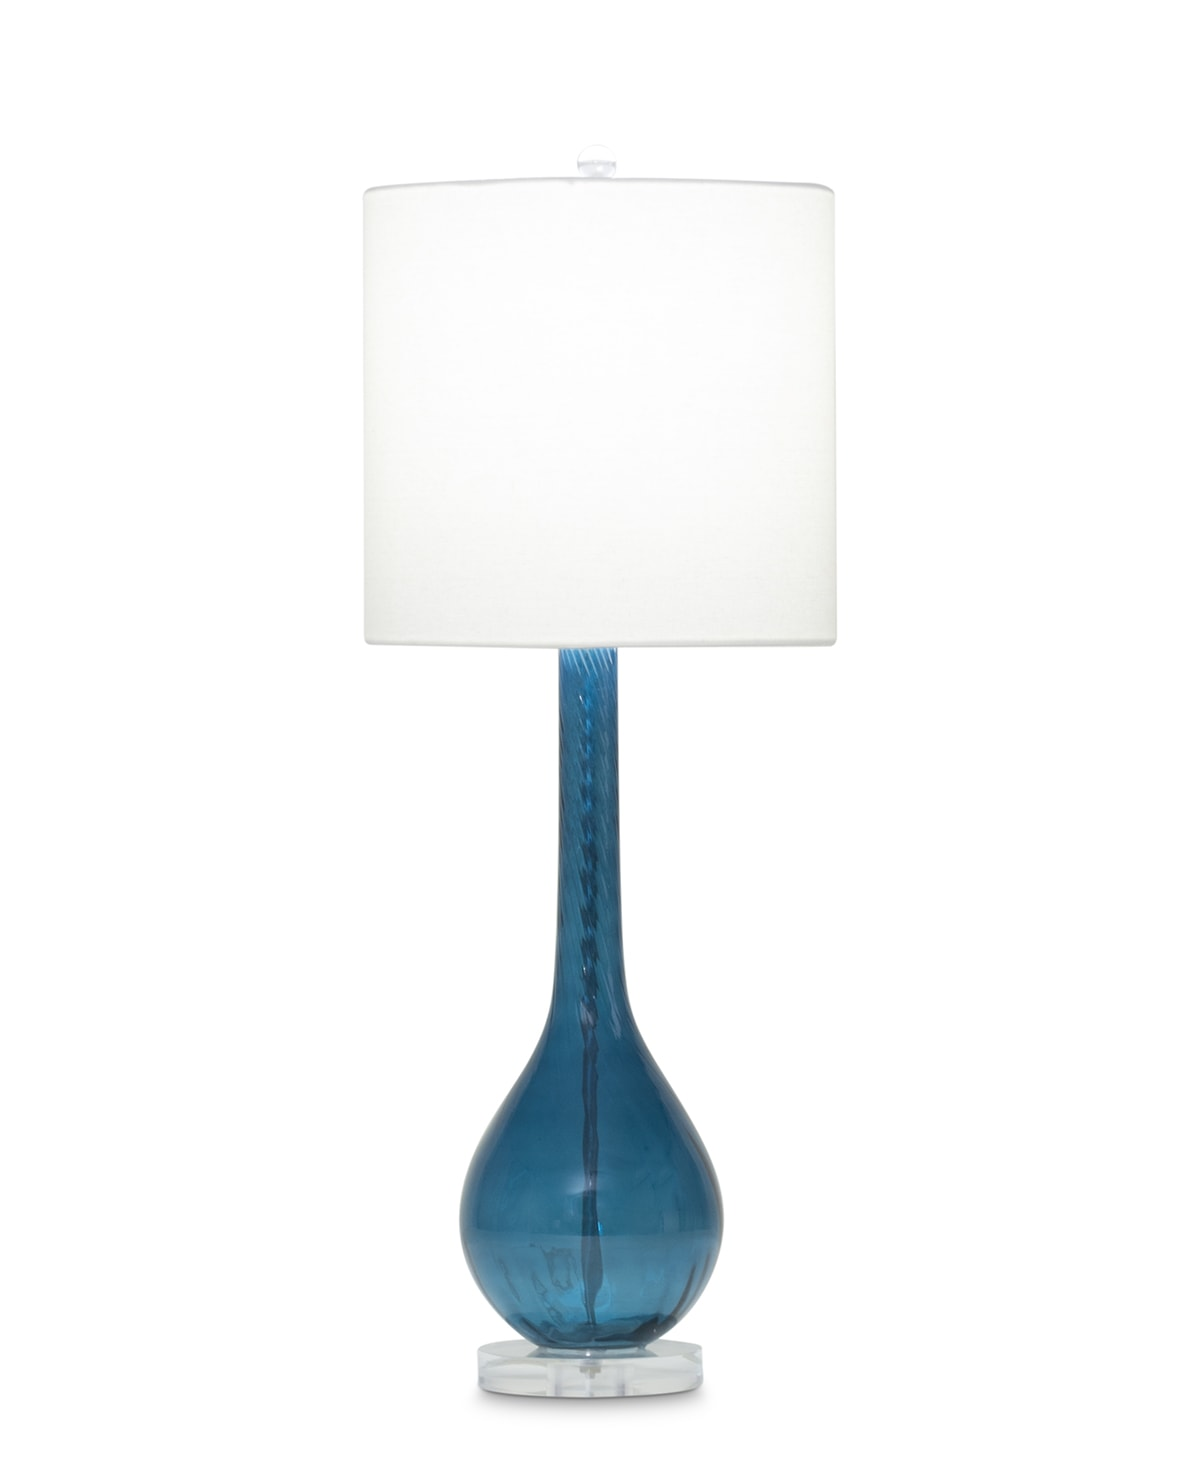 FlowDecor Merlot Table Lamp in mouth-blown glass with blue finish and off-white linen drum shade (# 3672)